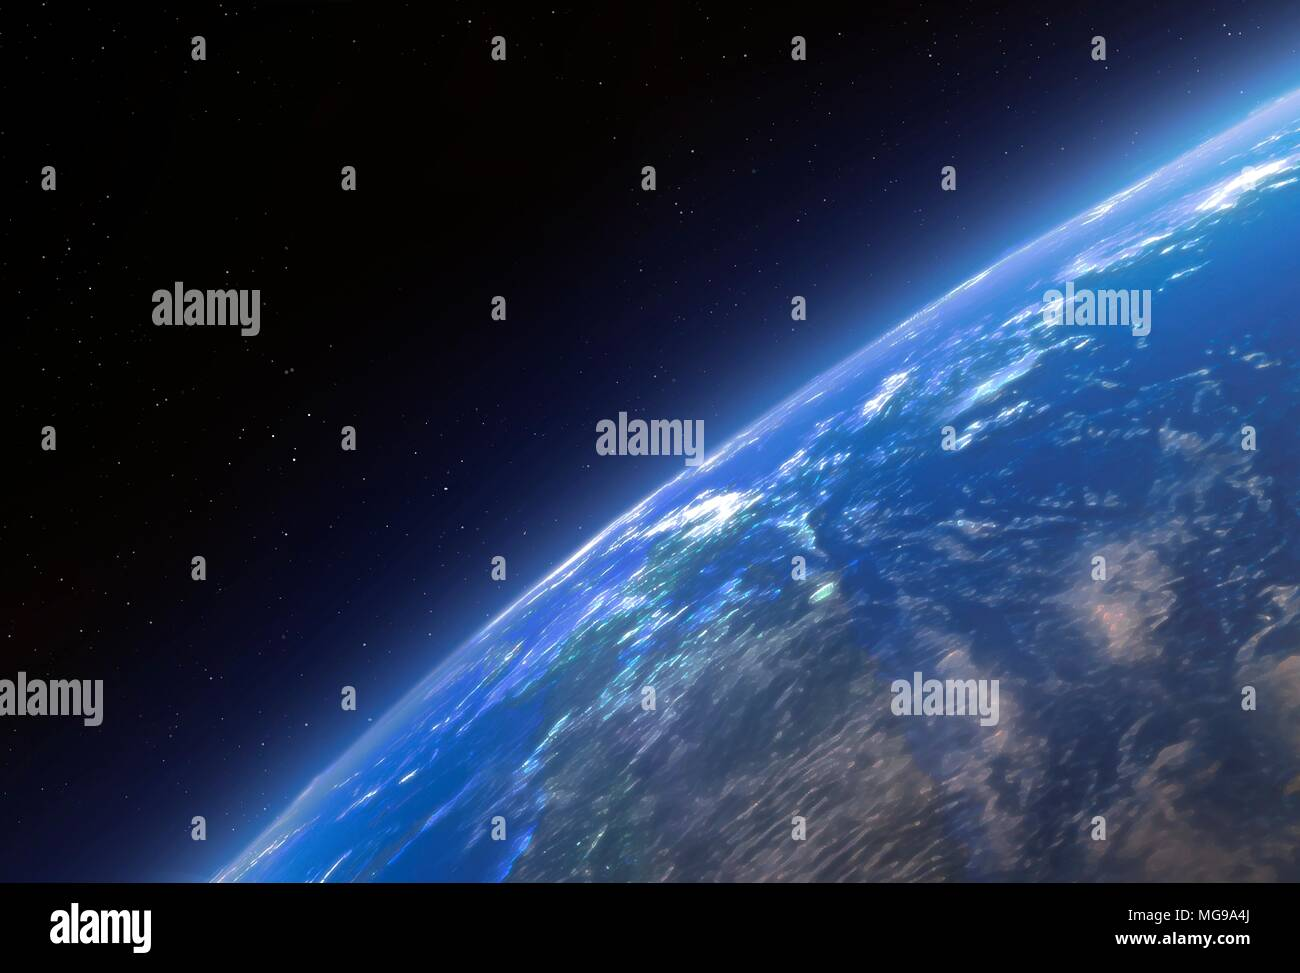 The Earth seen from space, illustration. - Stock Image